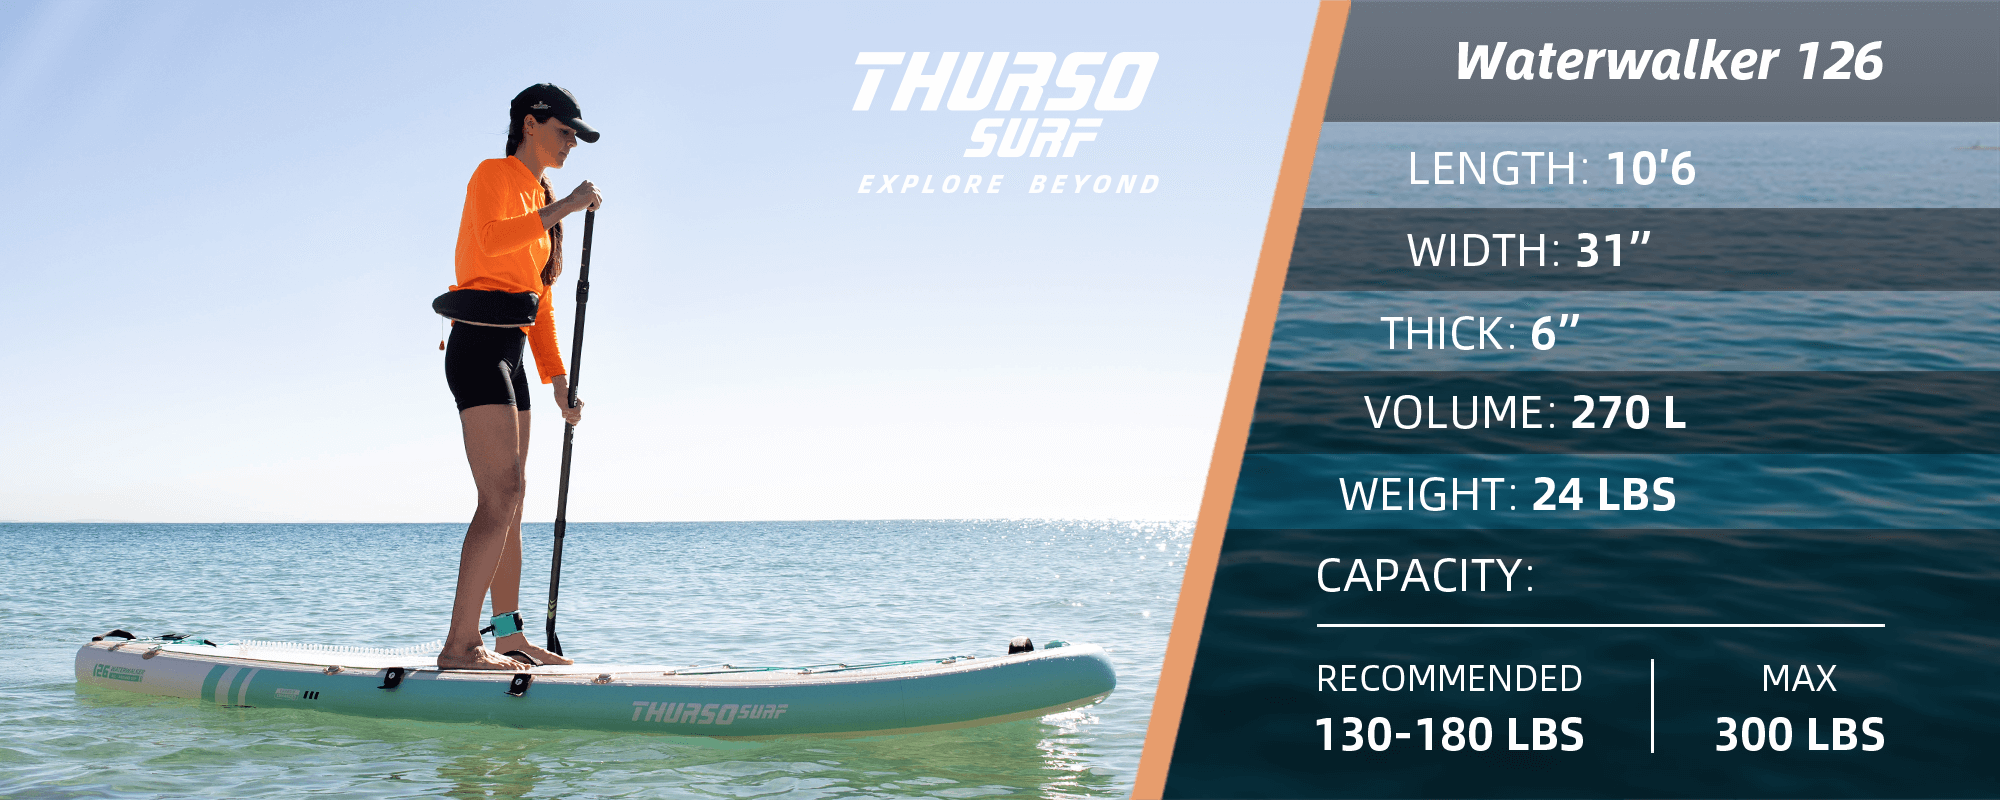 Thurso-Surf-Waterwalker-126-2021-specs